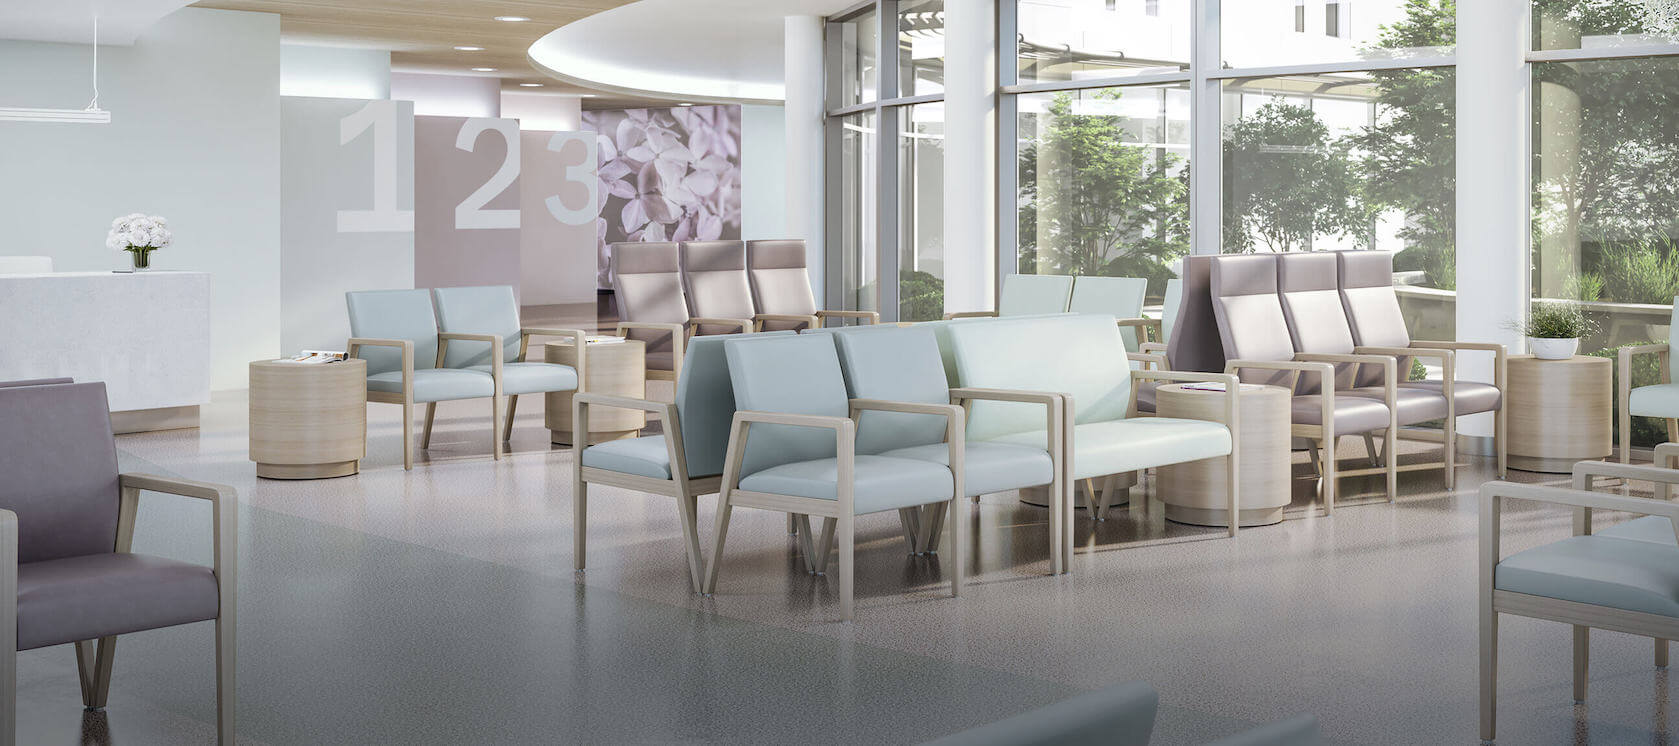 A Breath of Fresh Air: Hospital lobby